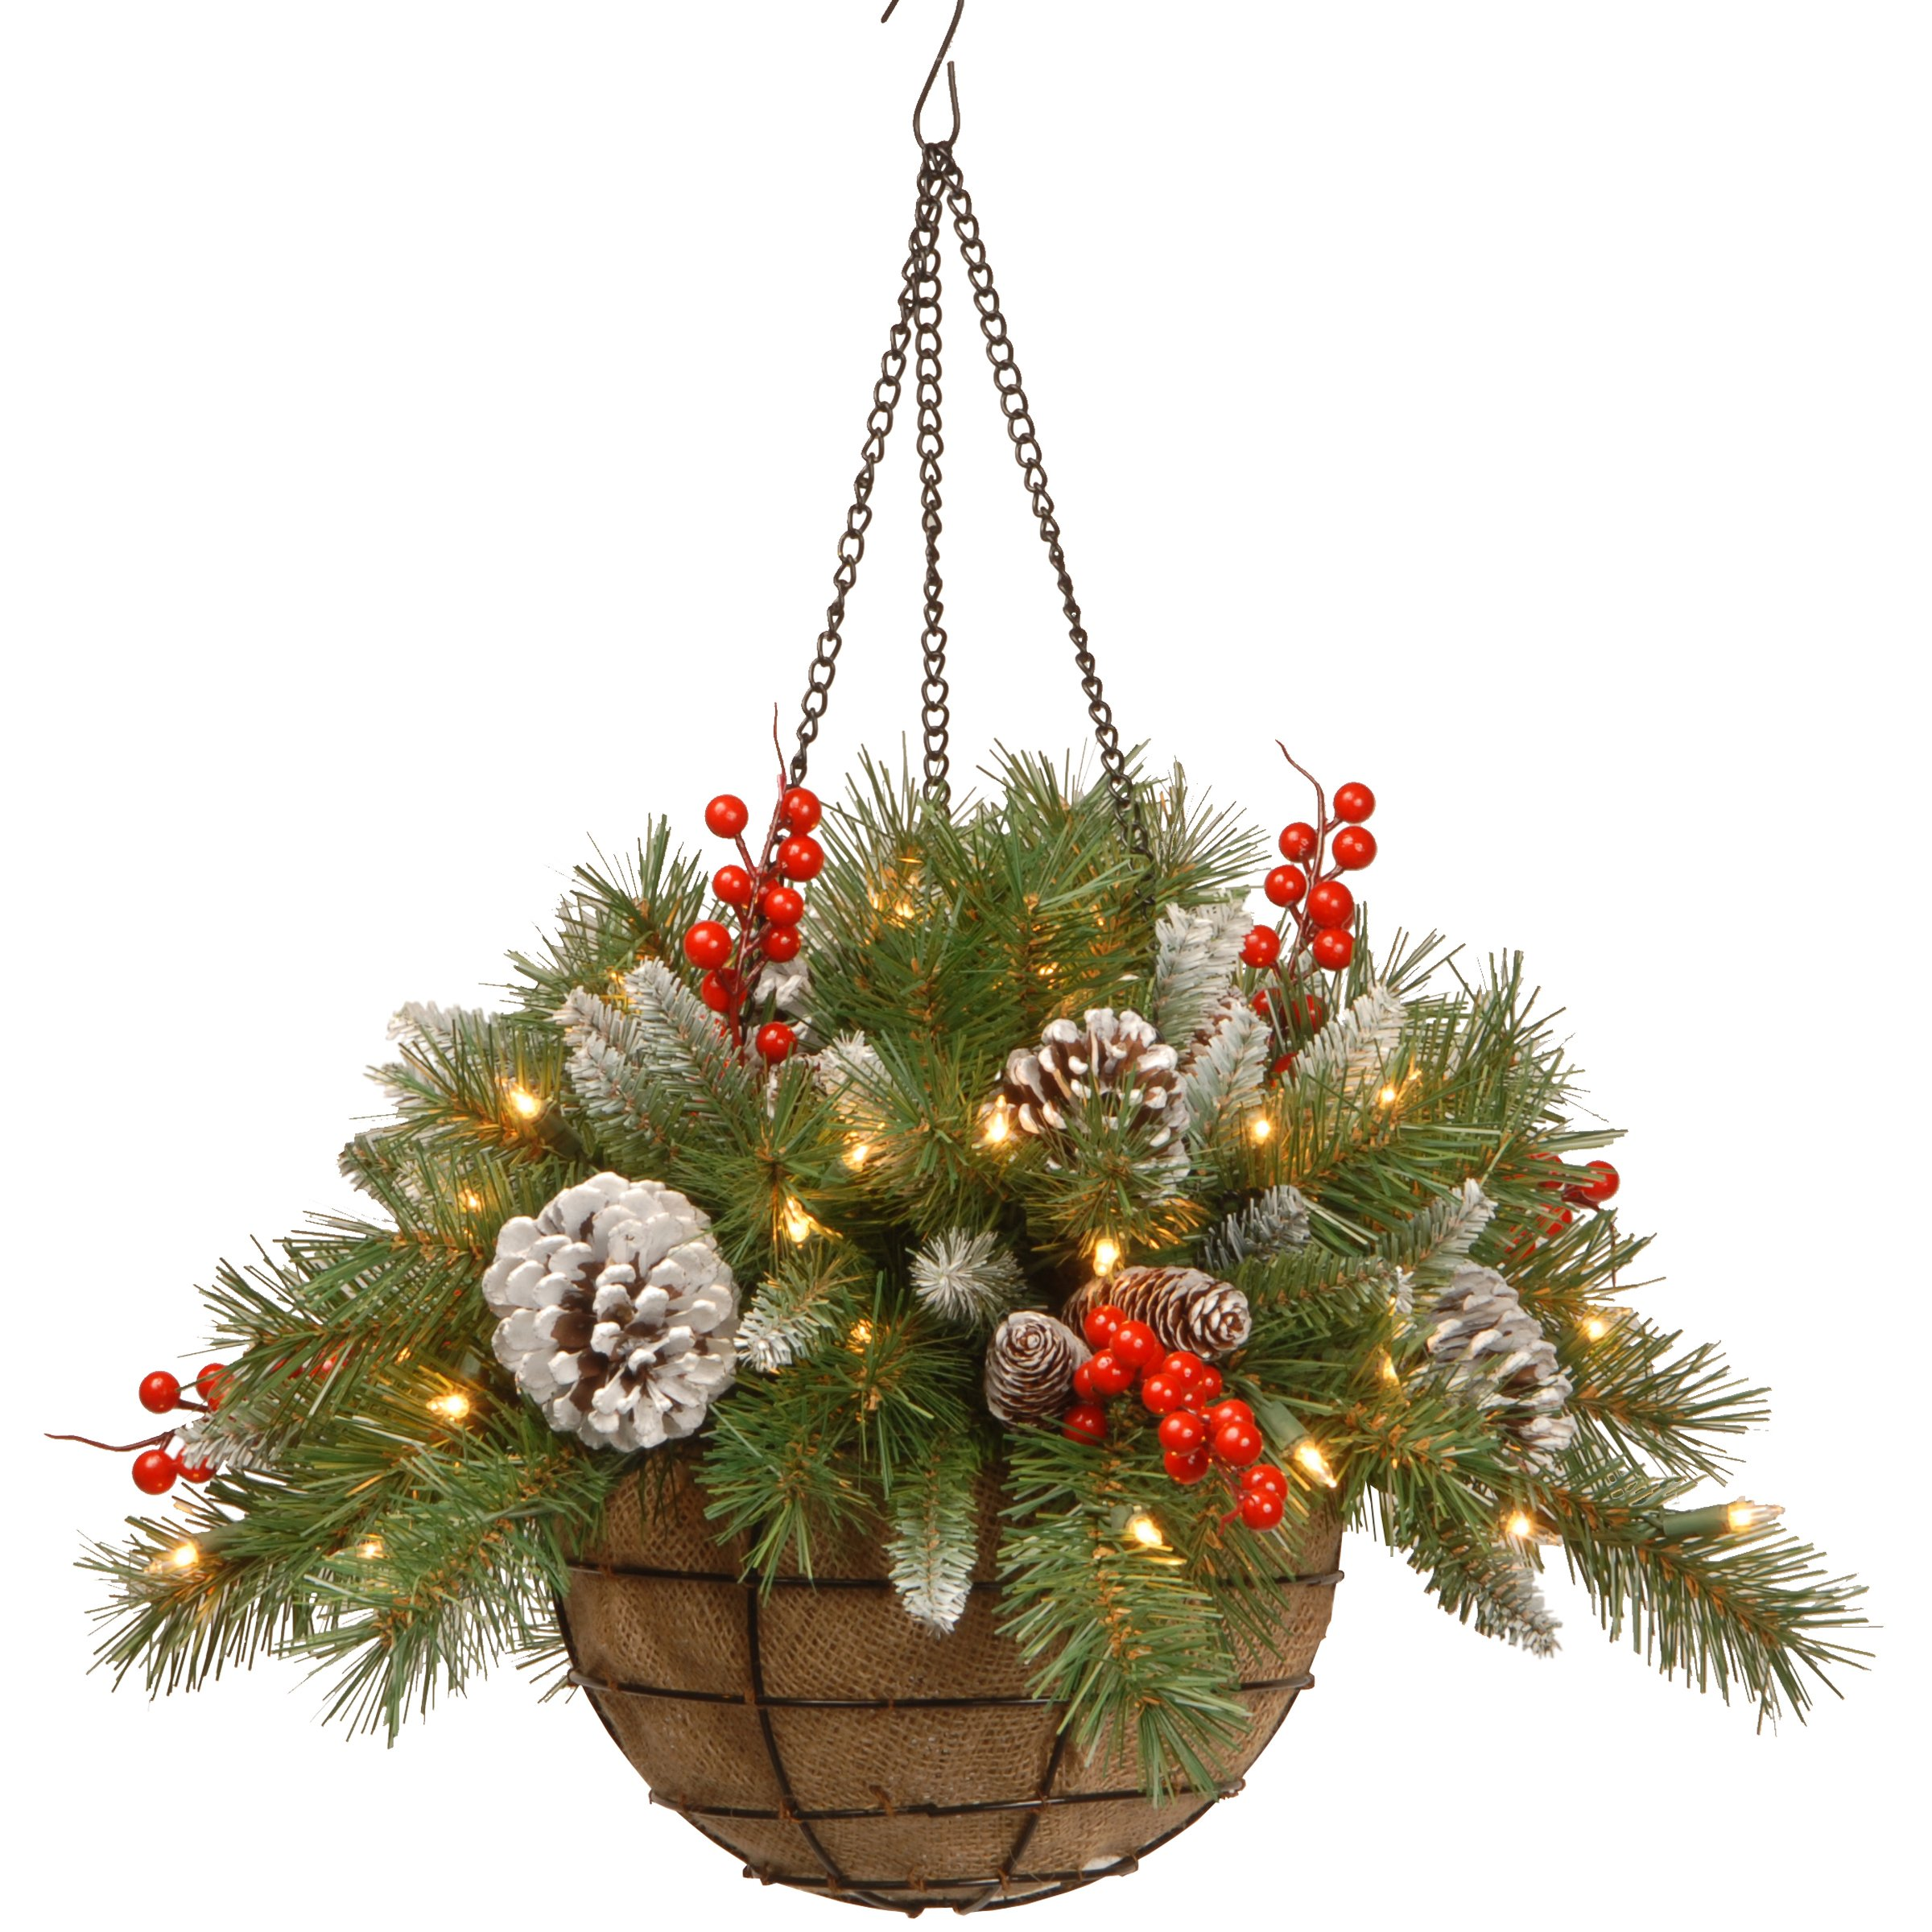 National Tree 20 Inch Frosted Berry Hanging Basket with Red Berries, Cones and 50 Battery Operated Warm White LED Lights (FRB-20HLW-B1)